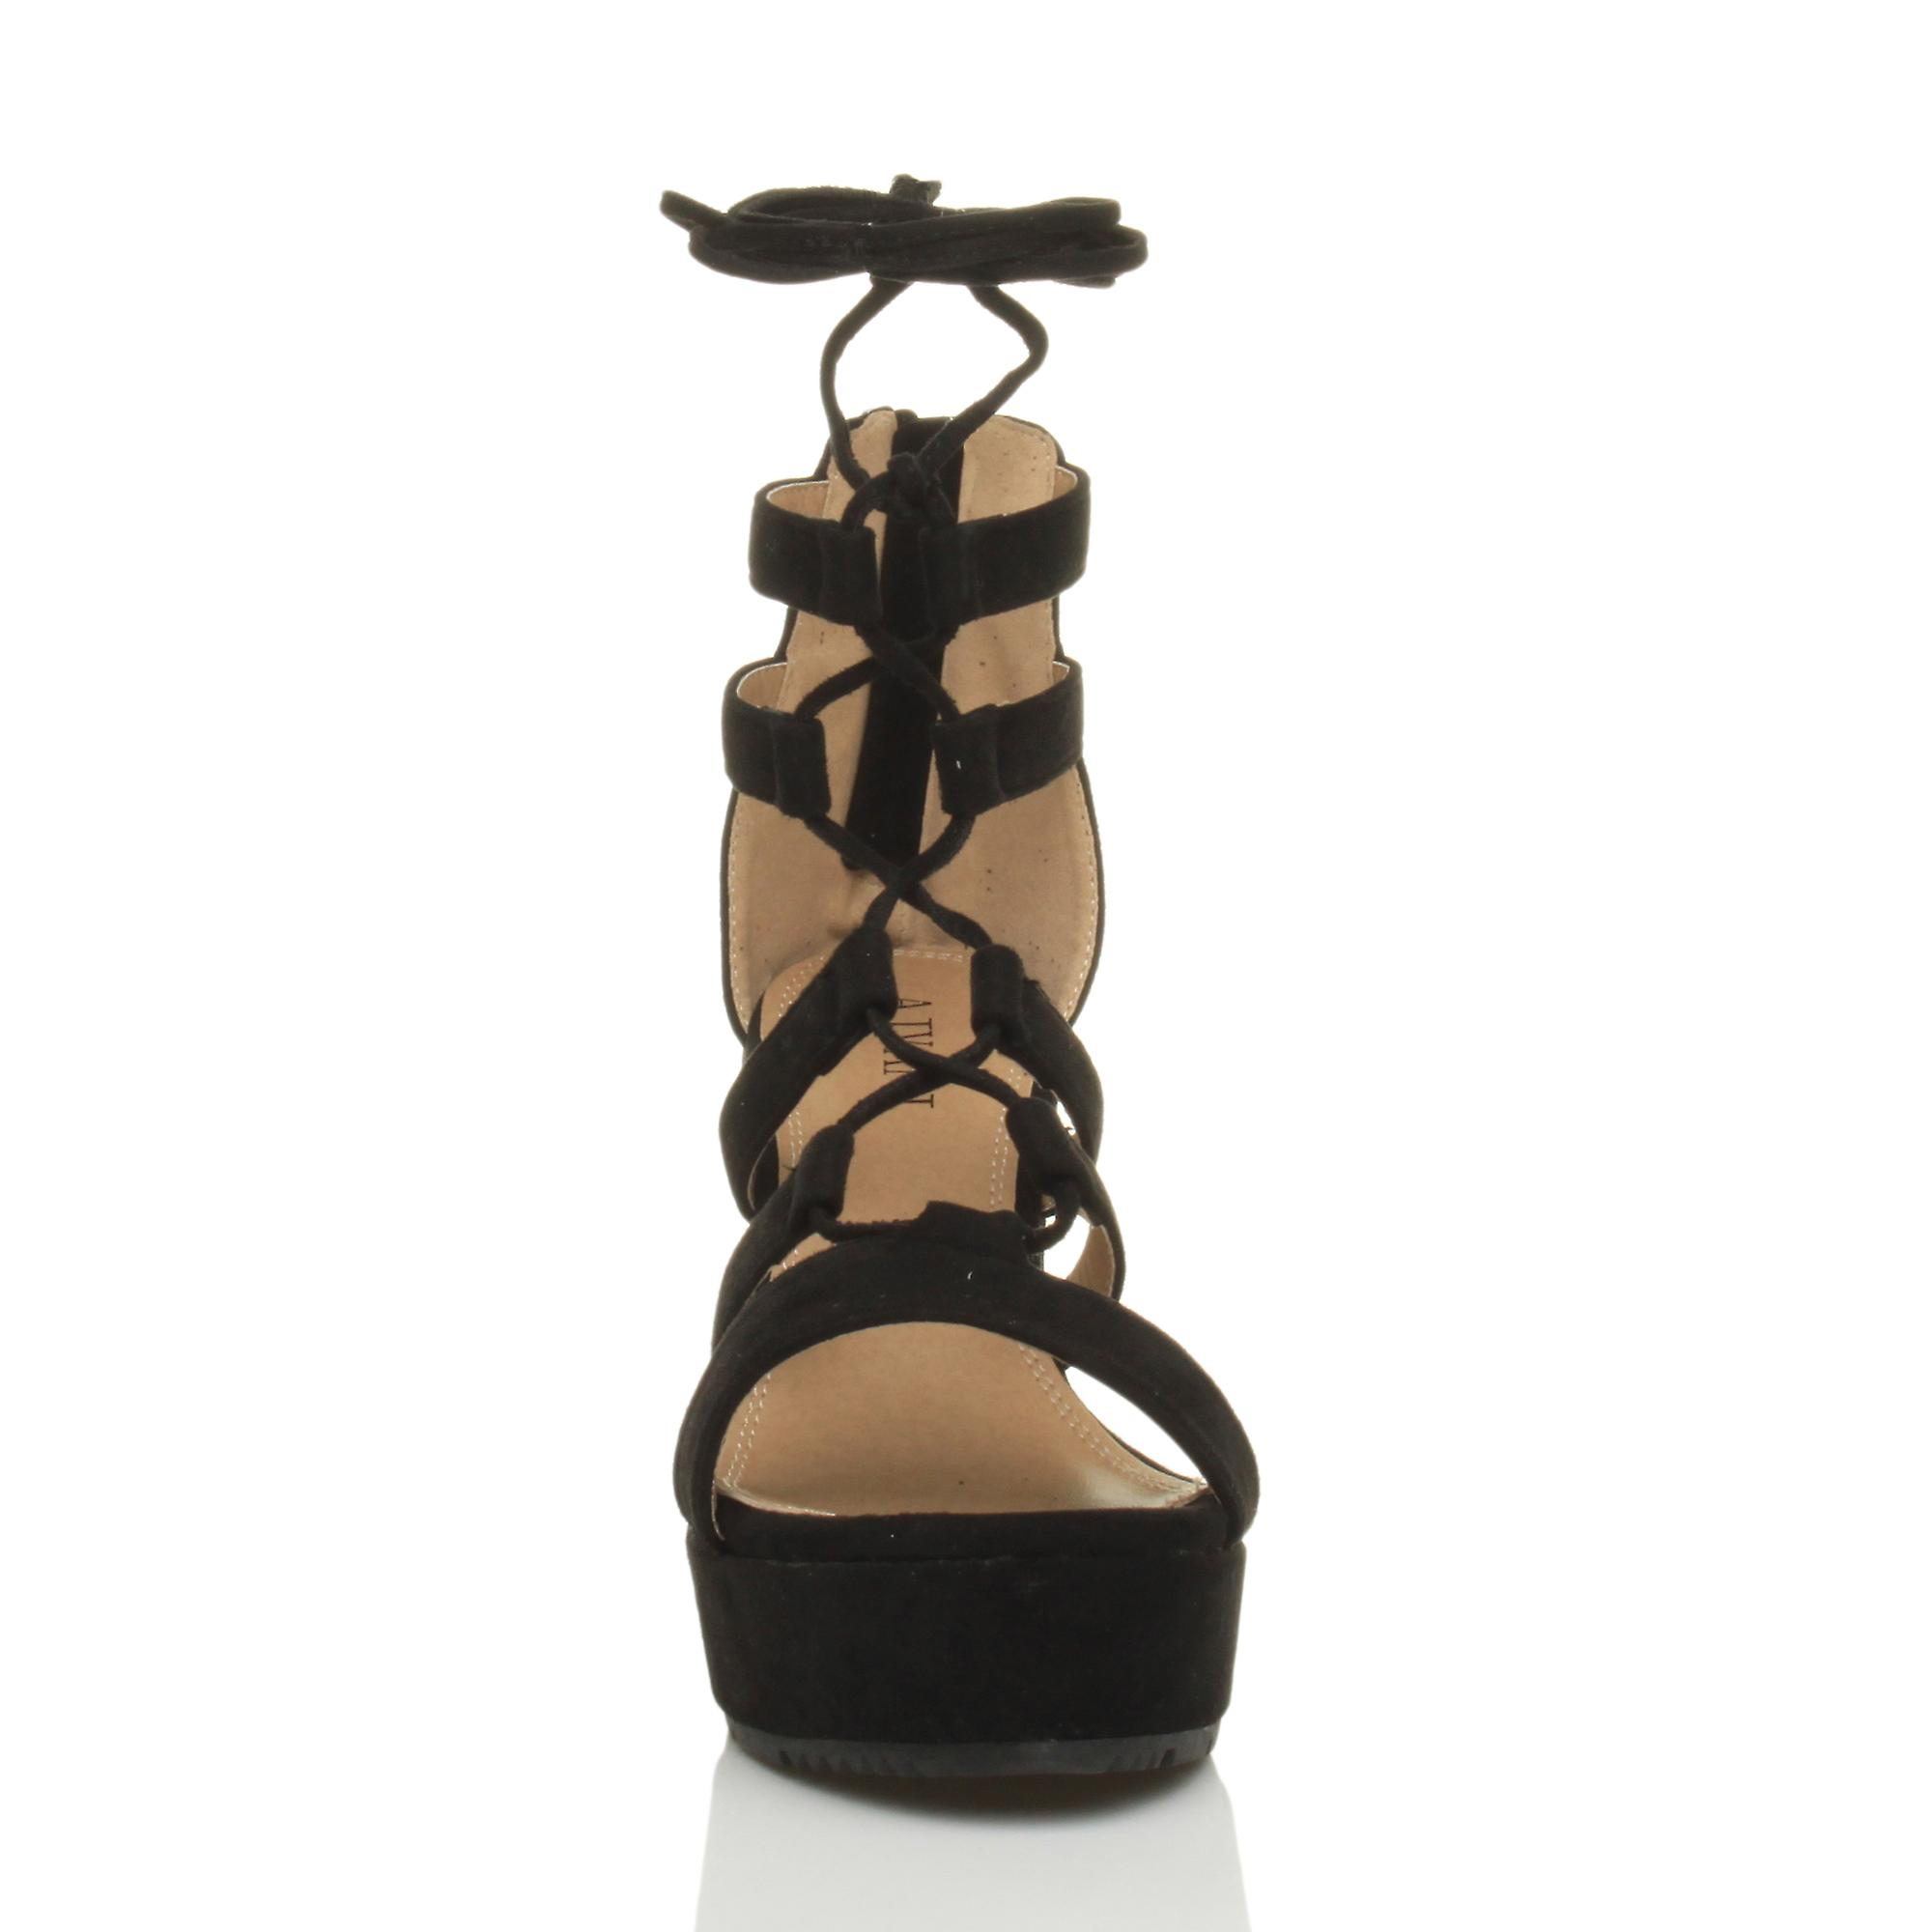 zip womens high wedge shoes Ajvani lace up tie sandals caged gladiator platform ghillie 8gxwdBqa